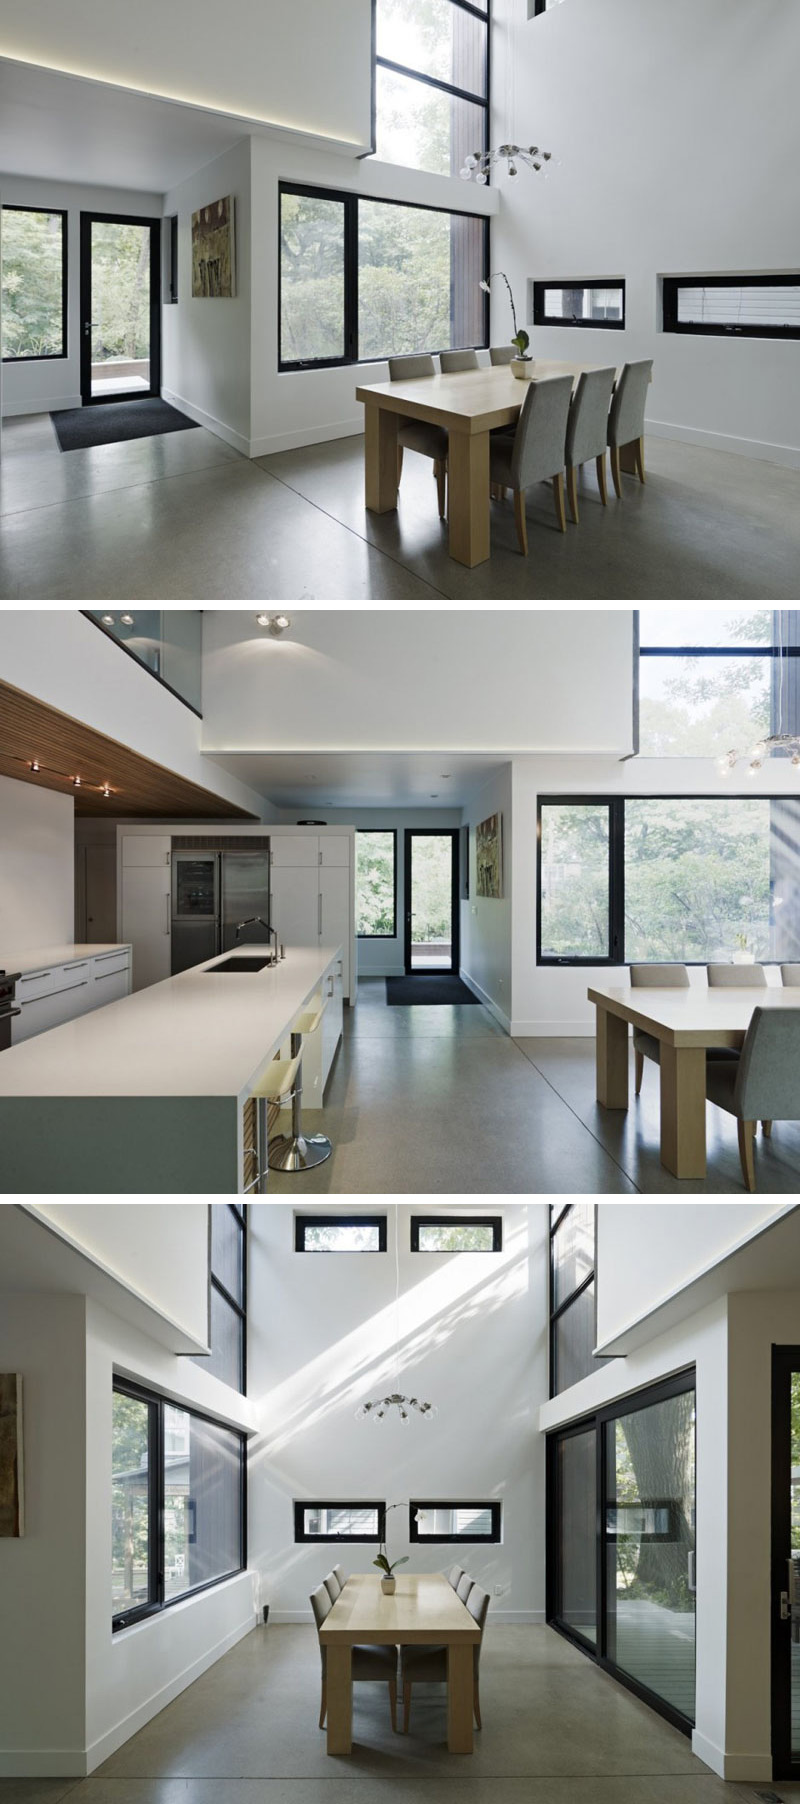 This modern house has polished concrete flooring that's heated, which compliments the white interior with black framed windows. Sliding glass doors beside the dining table lead to an outdoor porch.